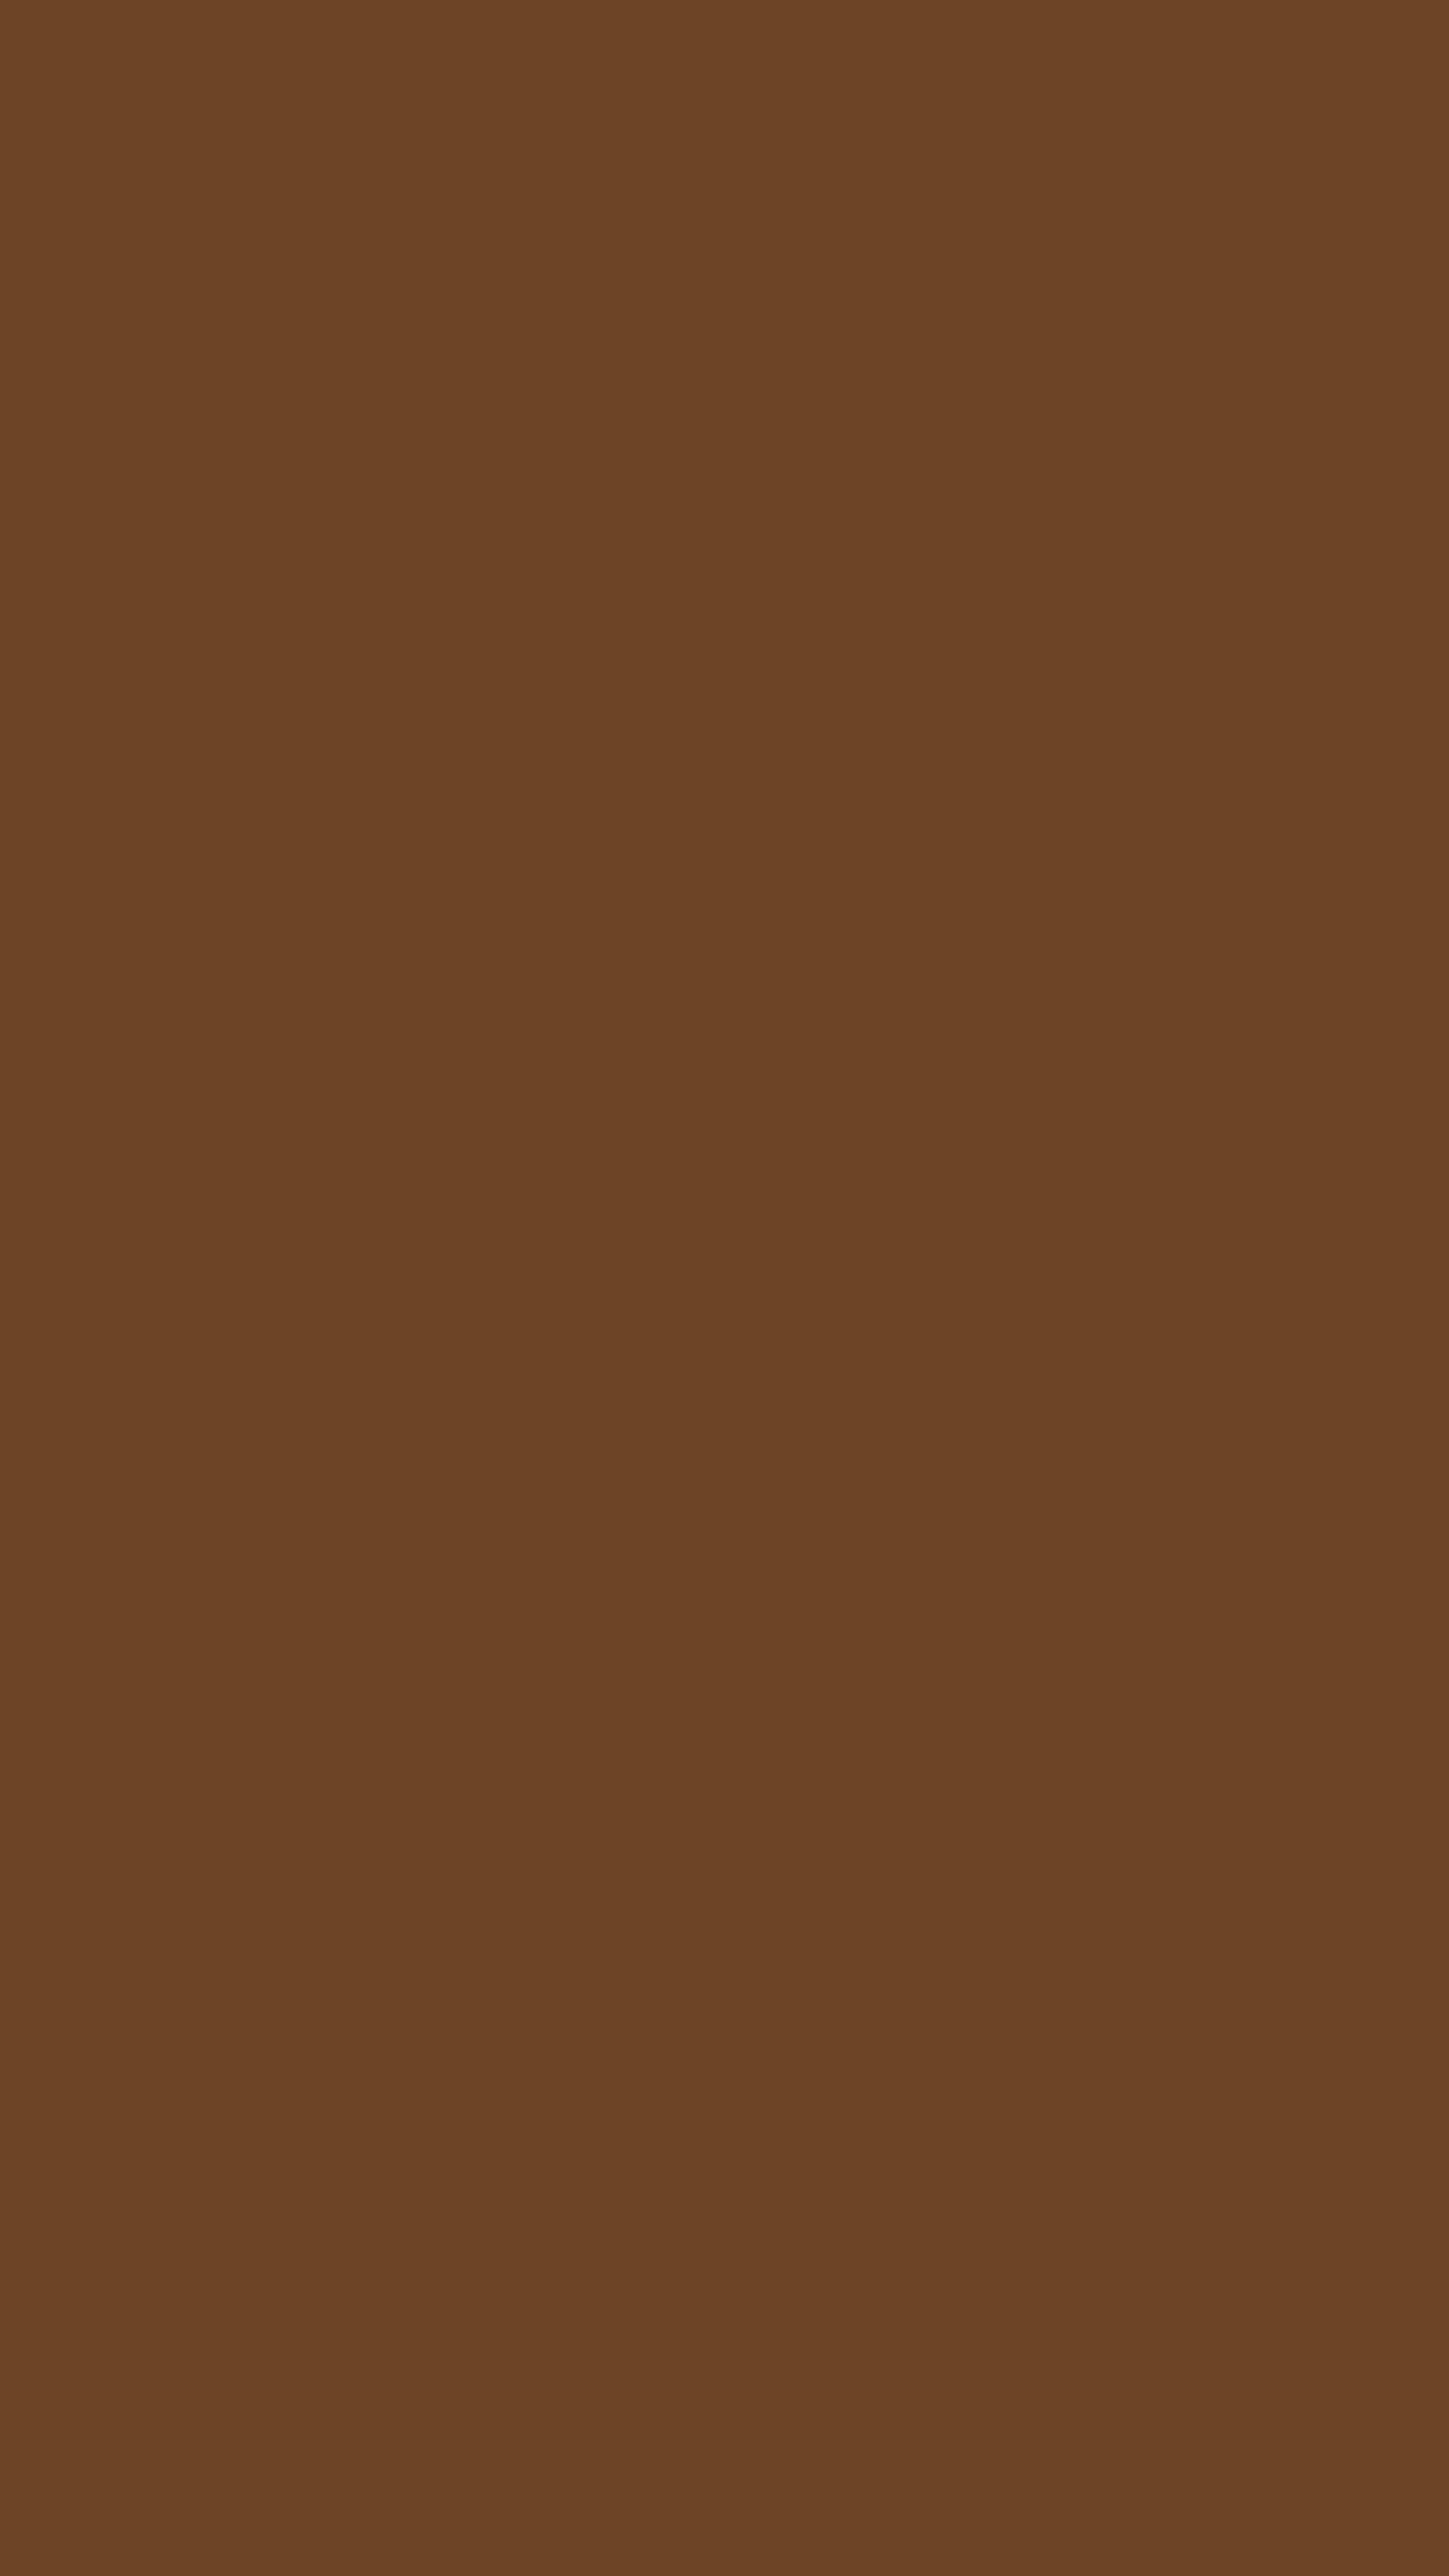 2160x3840 Brown Nose Solid Color Background Wallpaper for Mobile Phone